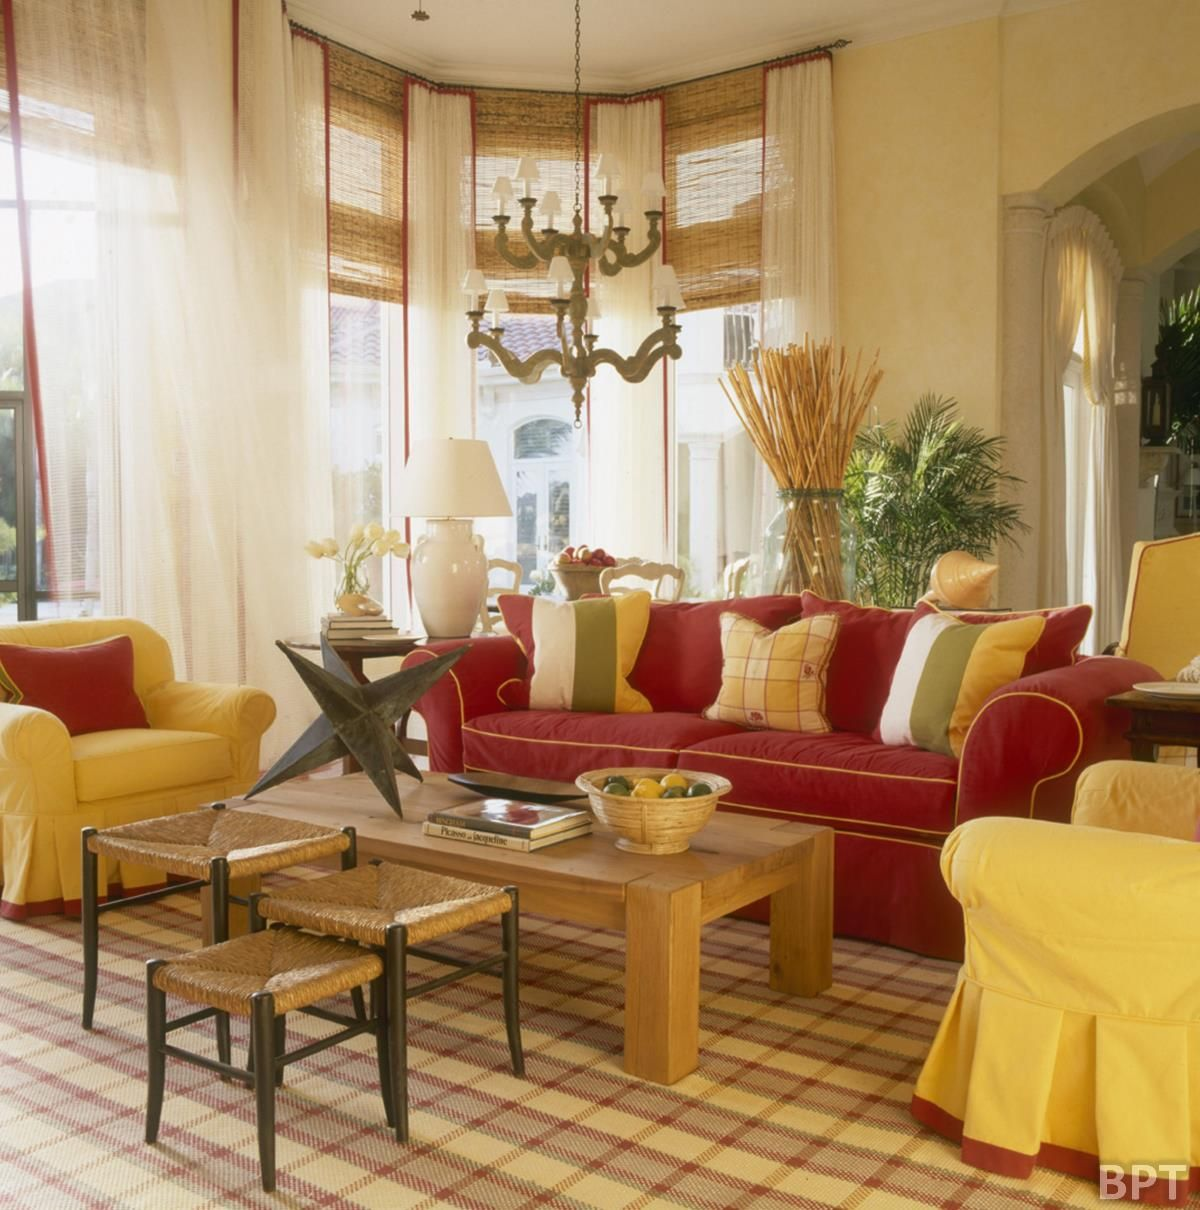 Classic interior living room design with yellow and red Home interior furniture